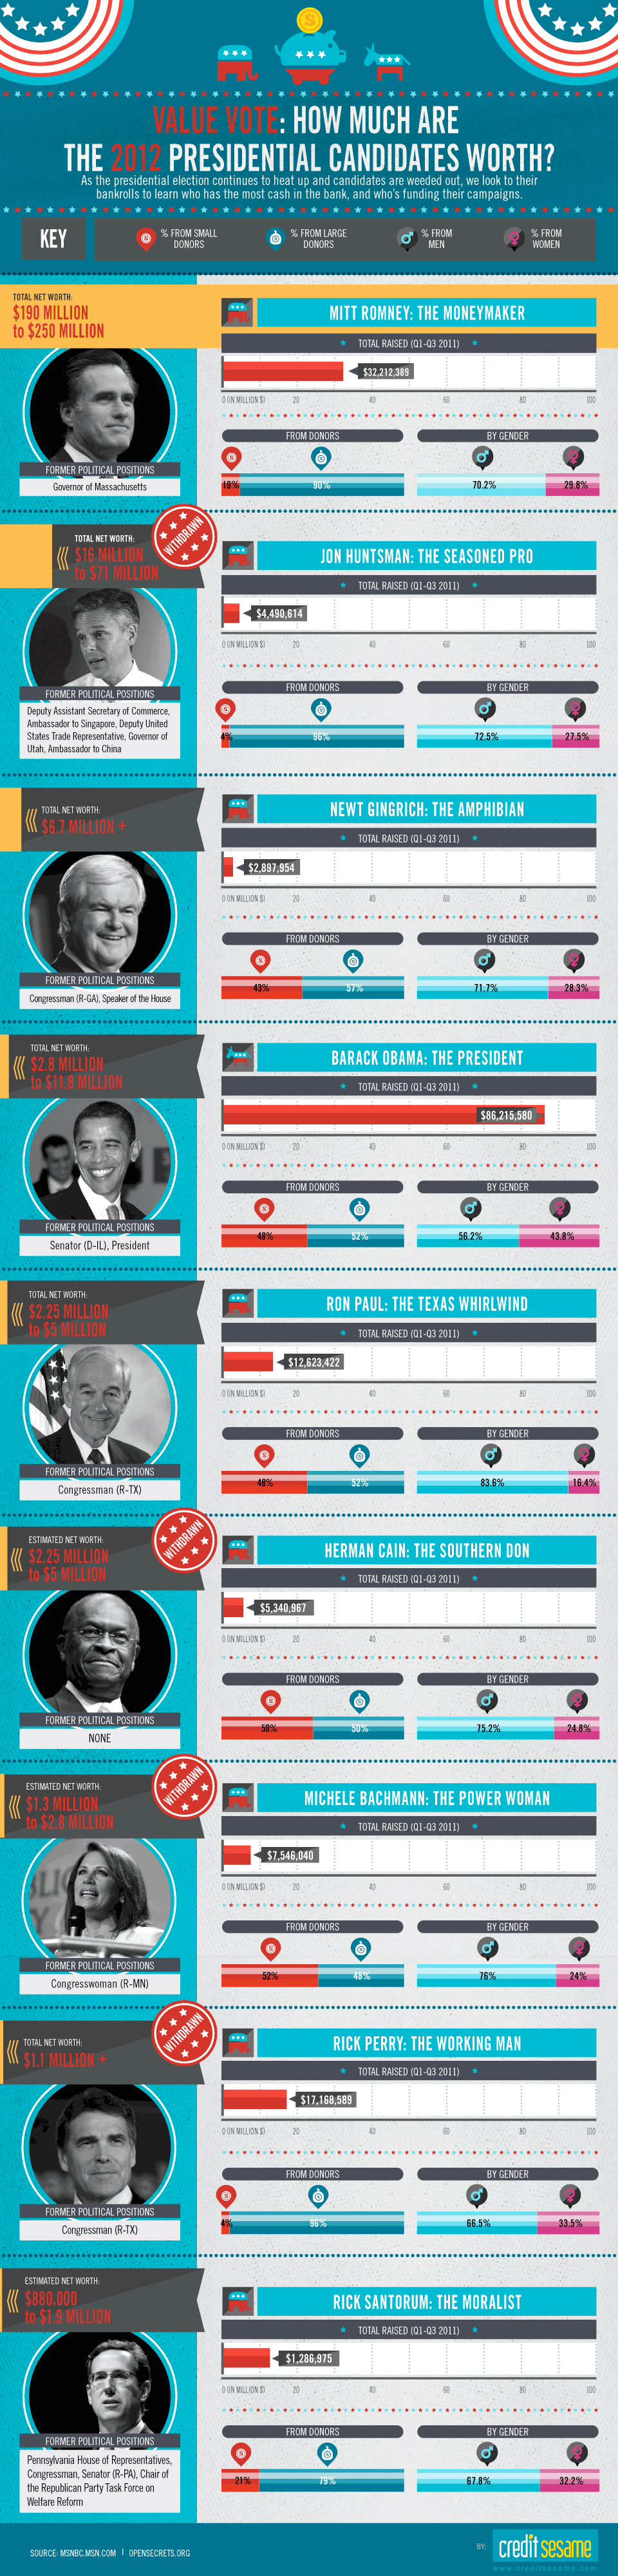 Value Vote: How Much Are The 2012 Presidential Candidates Worth